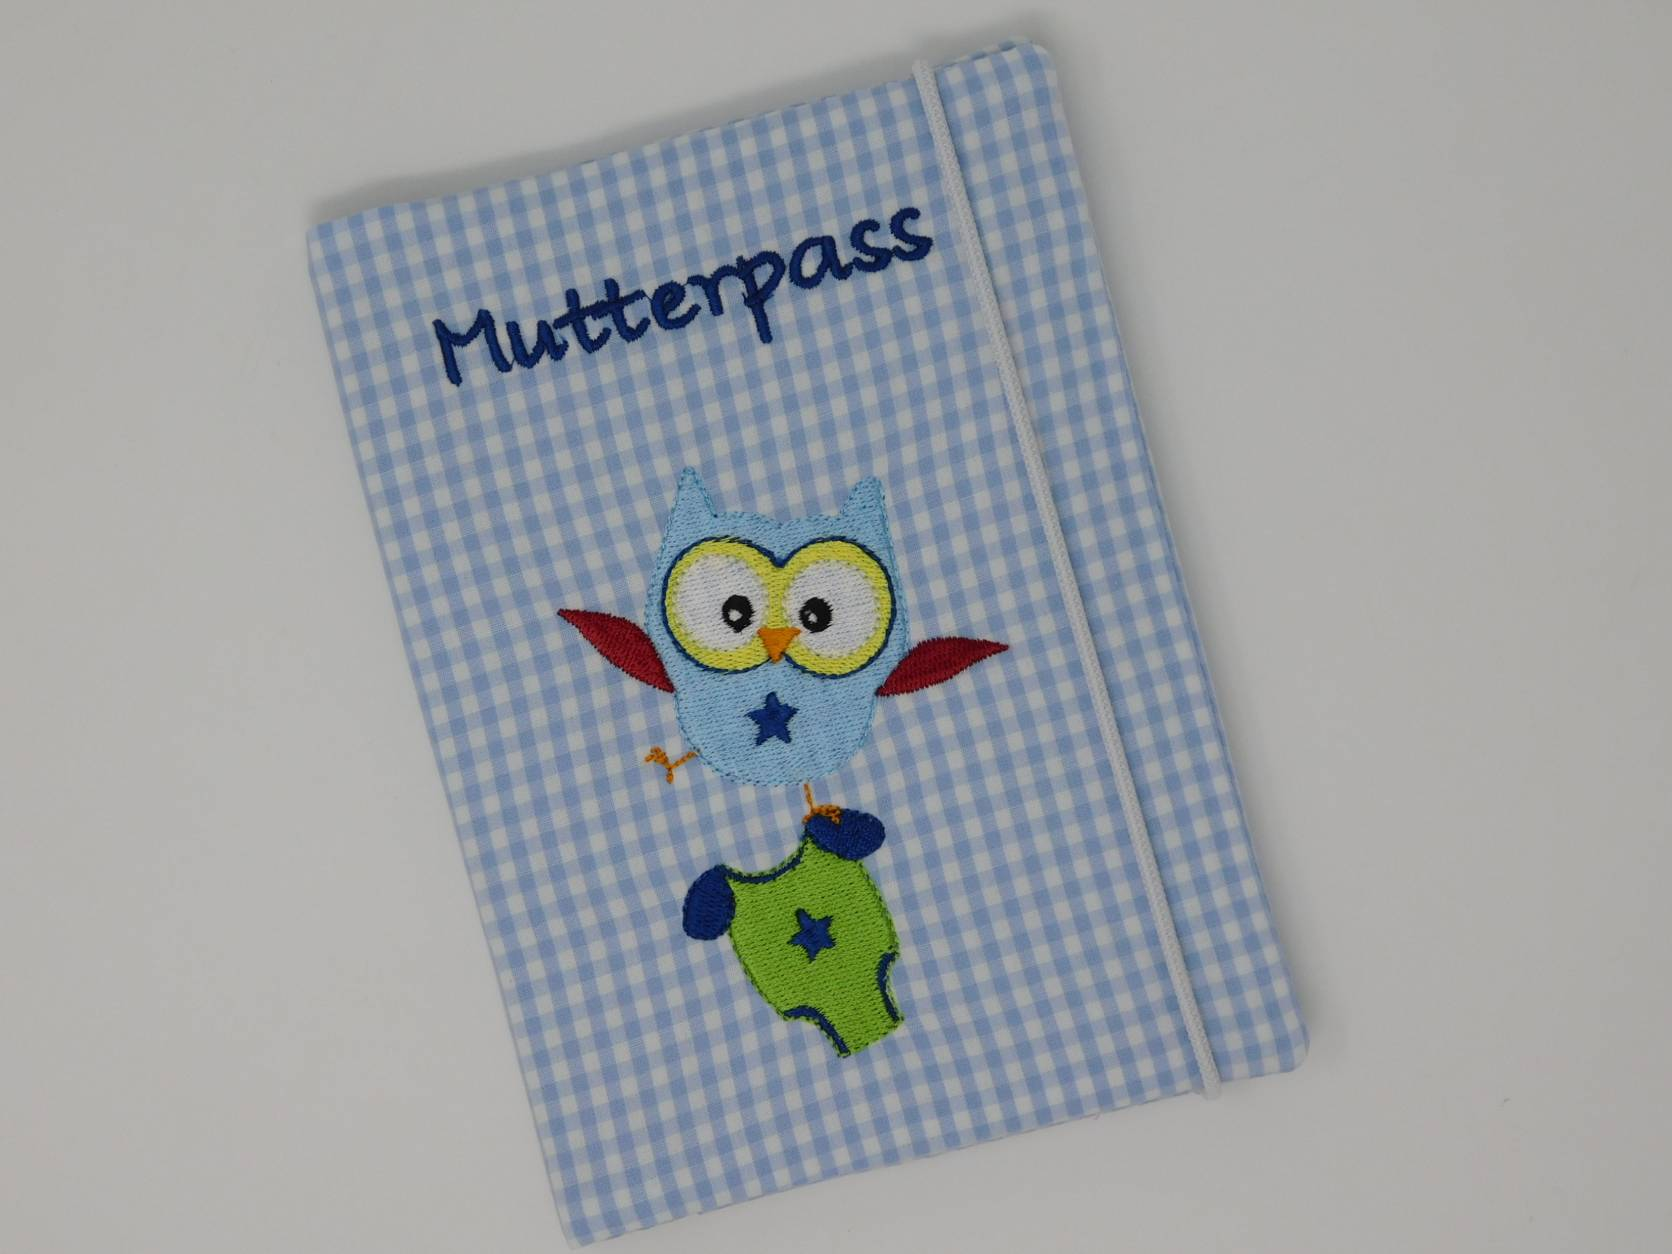 Mutterpass Eule